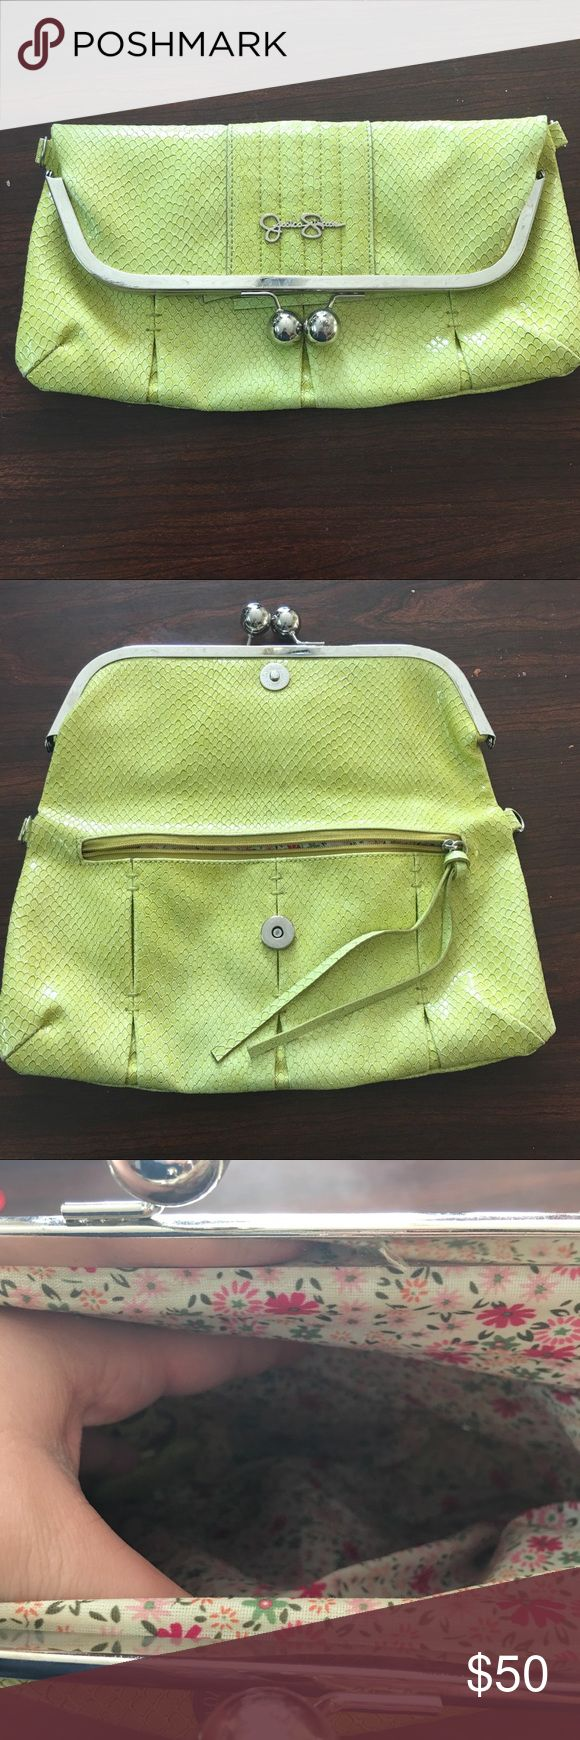 Yellow Jessica Simpson Clutch Crossbody Bag This yellow Jessica Simpson bag is so versatile! It can be a clutch and a cross body bag. It has a long strap that matches perfectly. The inside is a beautiful floral material. Also has a zippered part on the front inside for easy and quick access. Jessica Simpson Bags Clutches & Wristlets